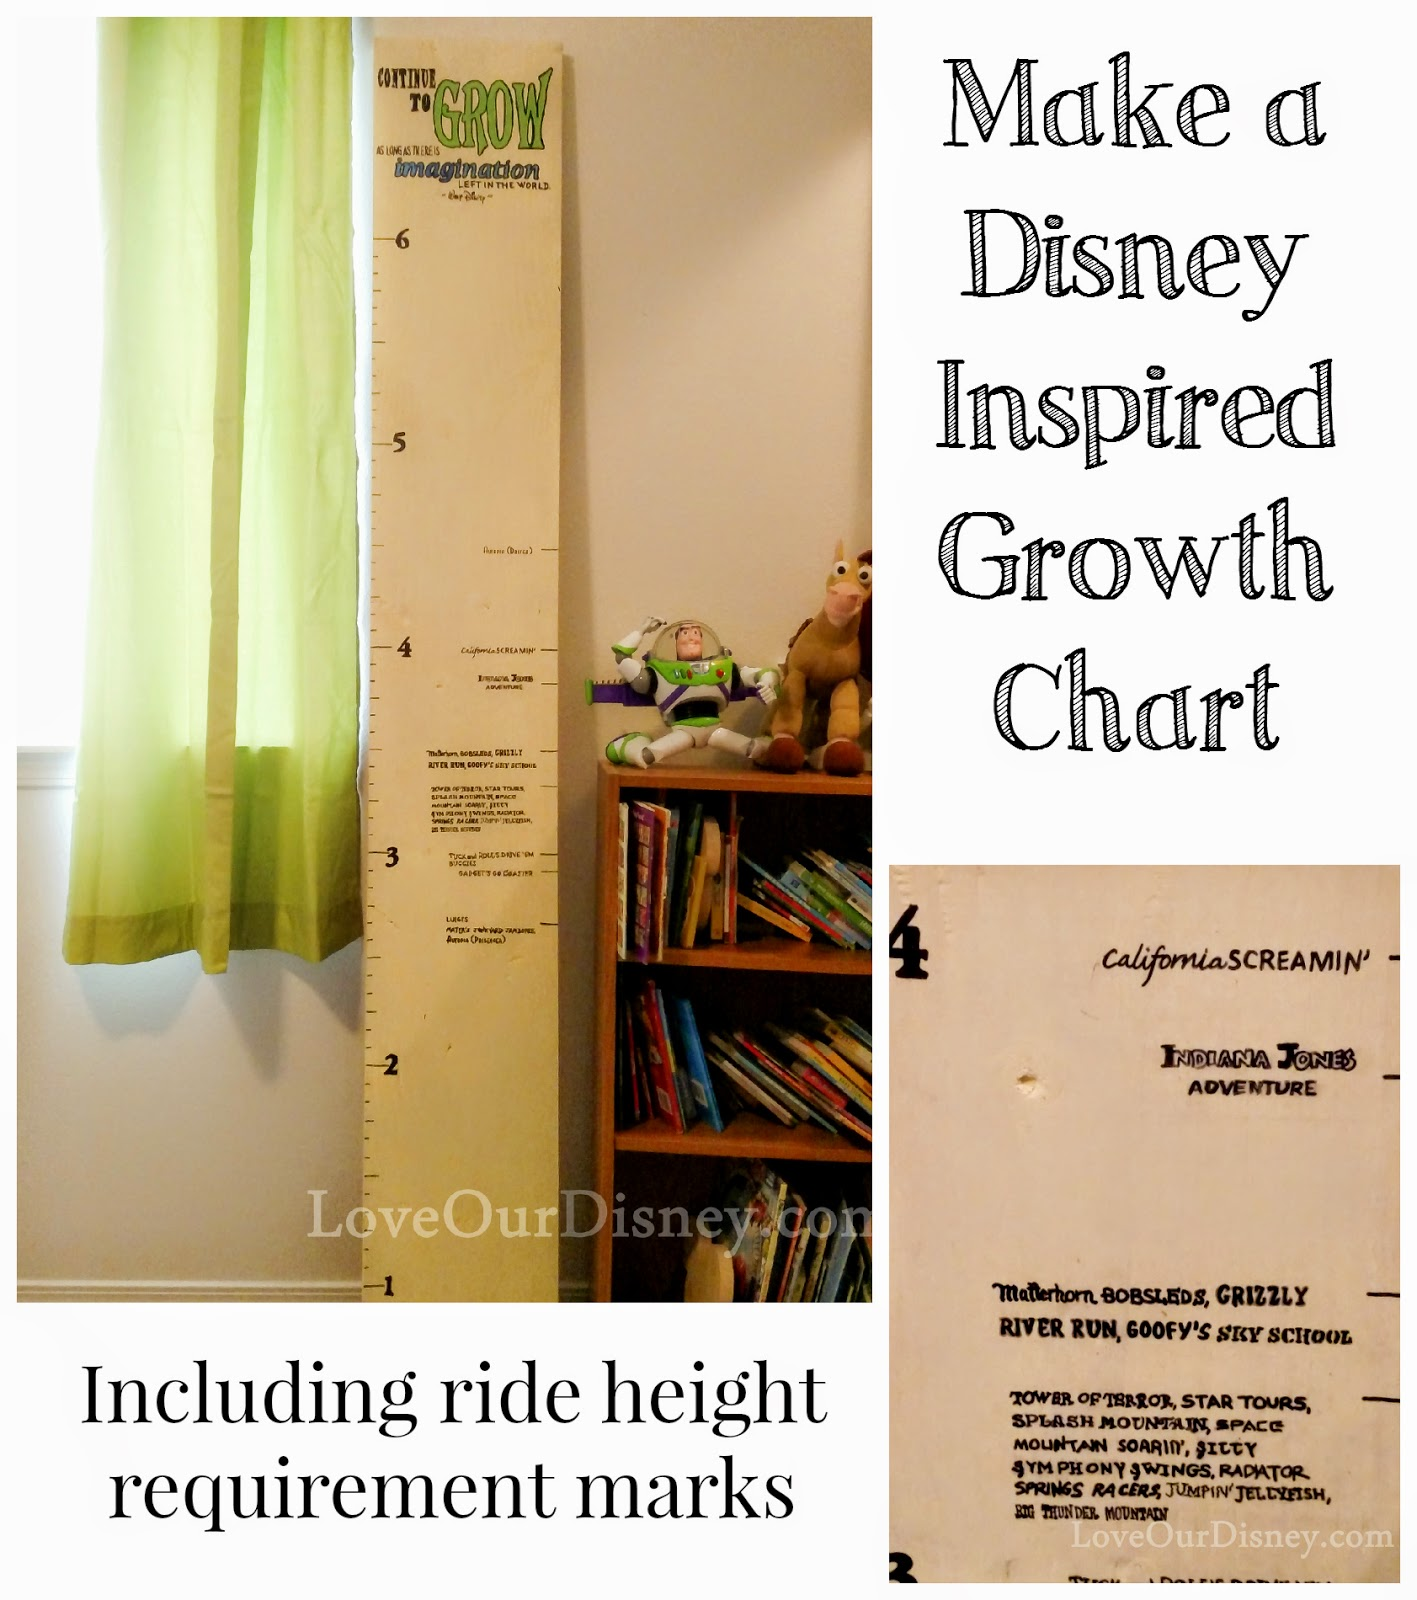 Disney growth chart with ride height requirements marked on it from LoveOurDisney.com